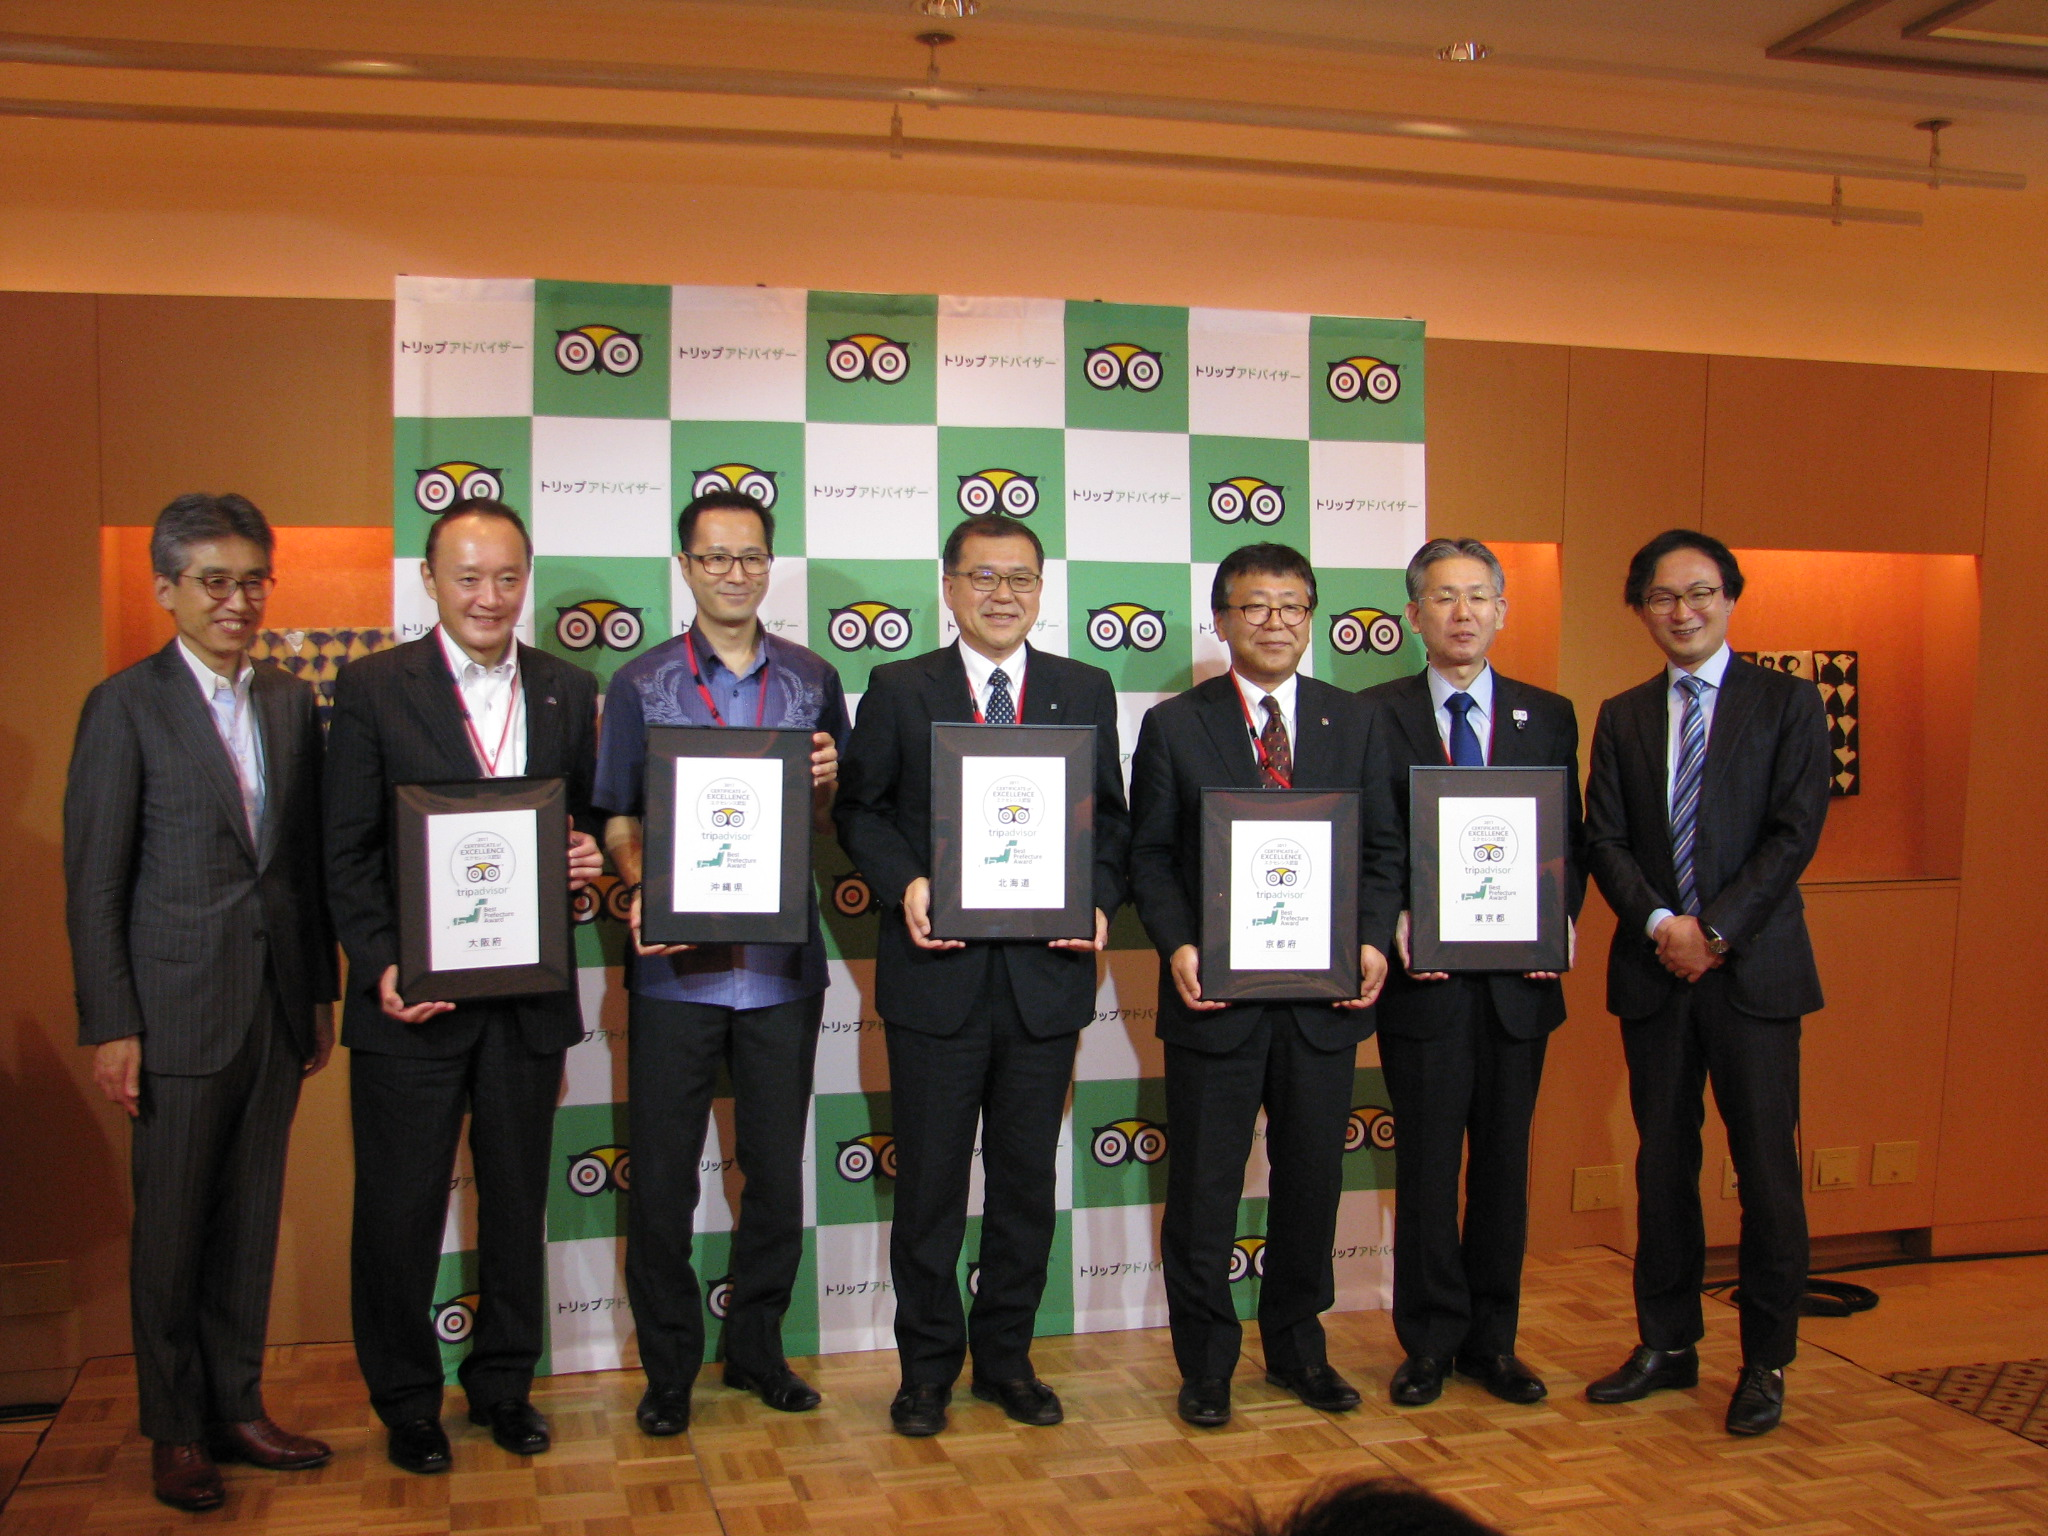 TripAdvisor awards Certificate of Excellence to more than 6,500 lodgings, tourist spots and restaurants in Japan